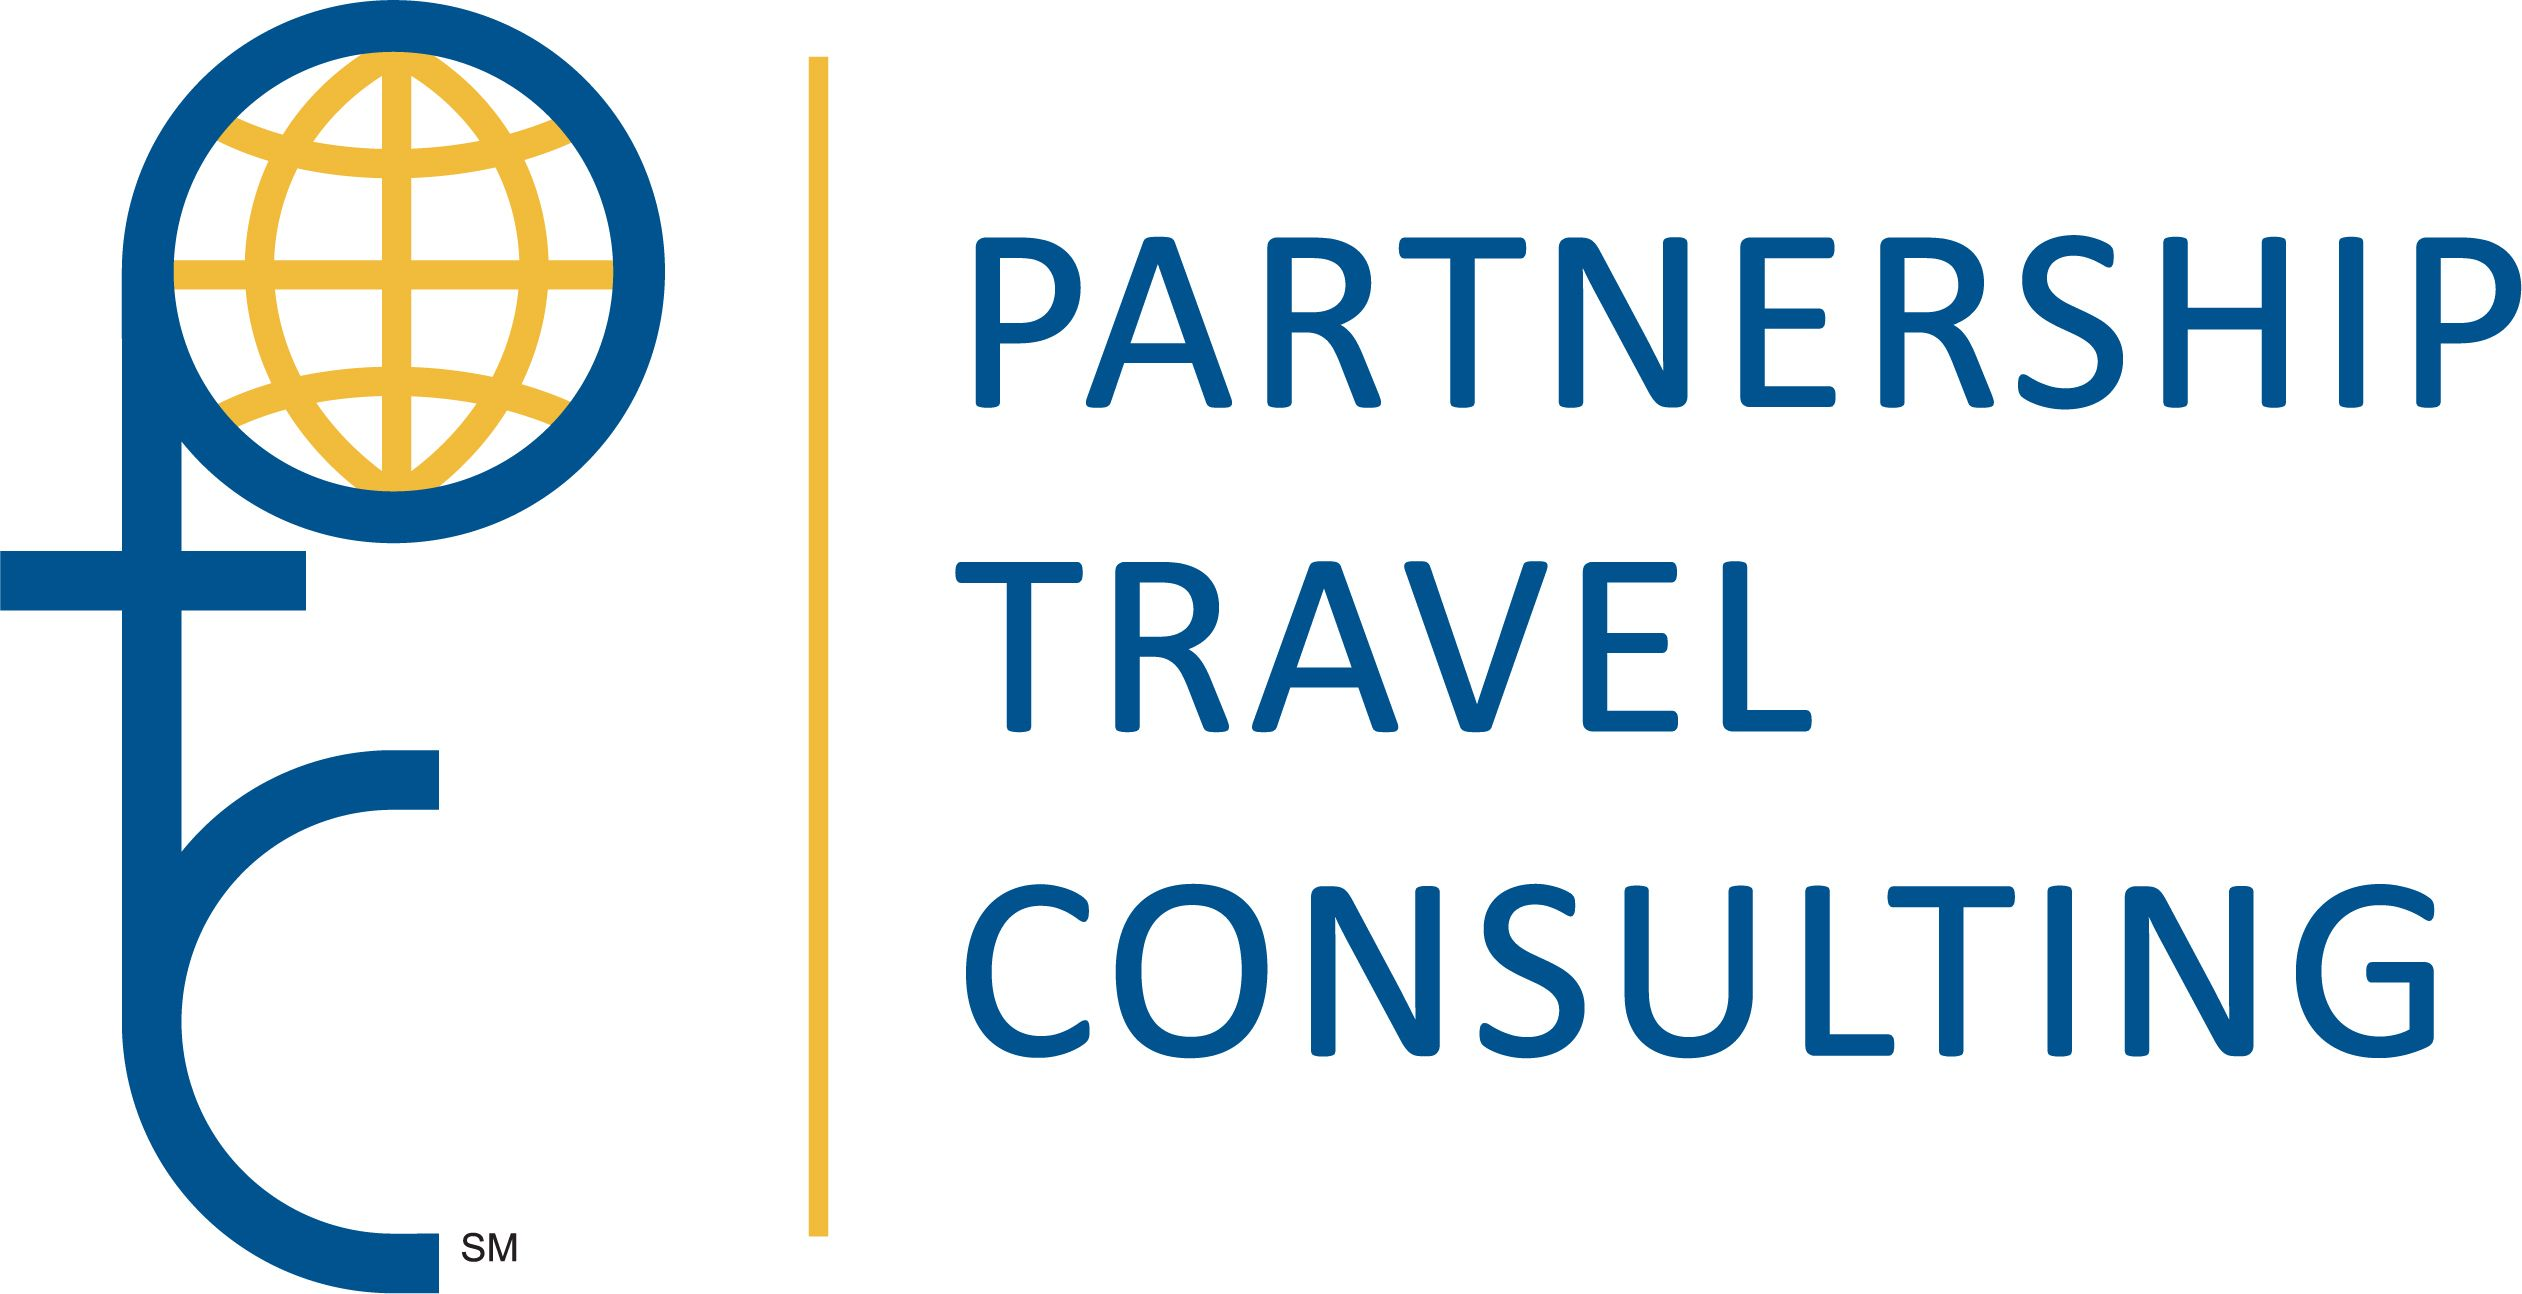 Partnership Travel Consulting